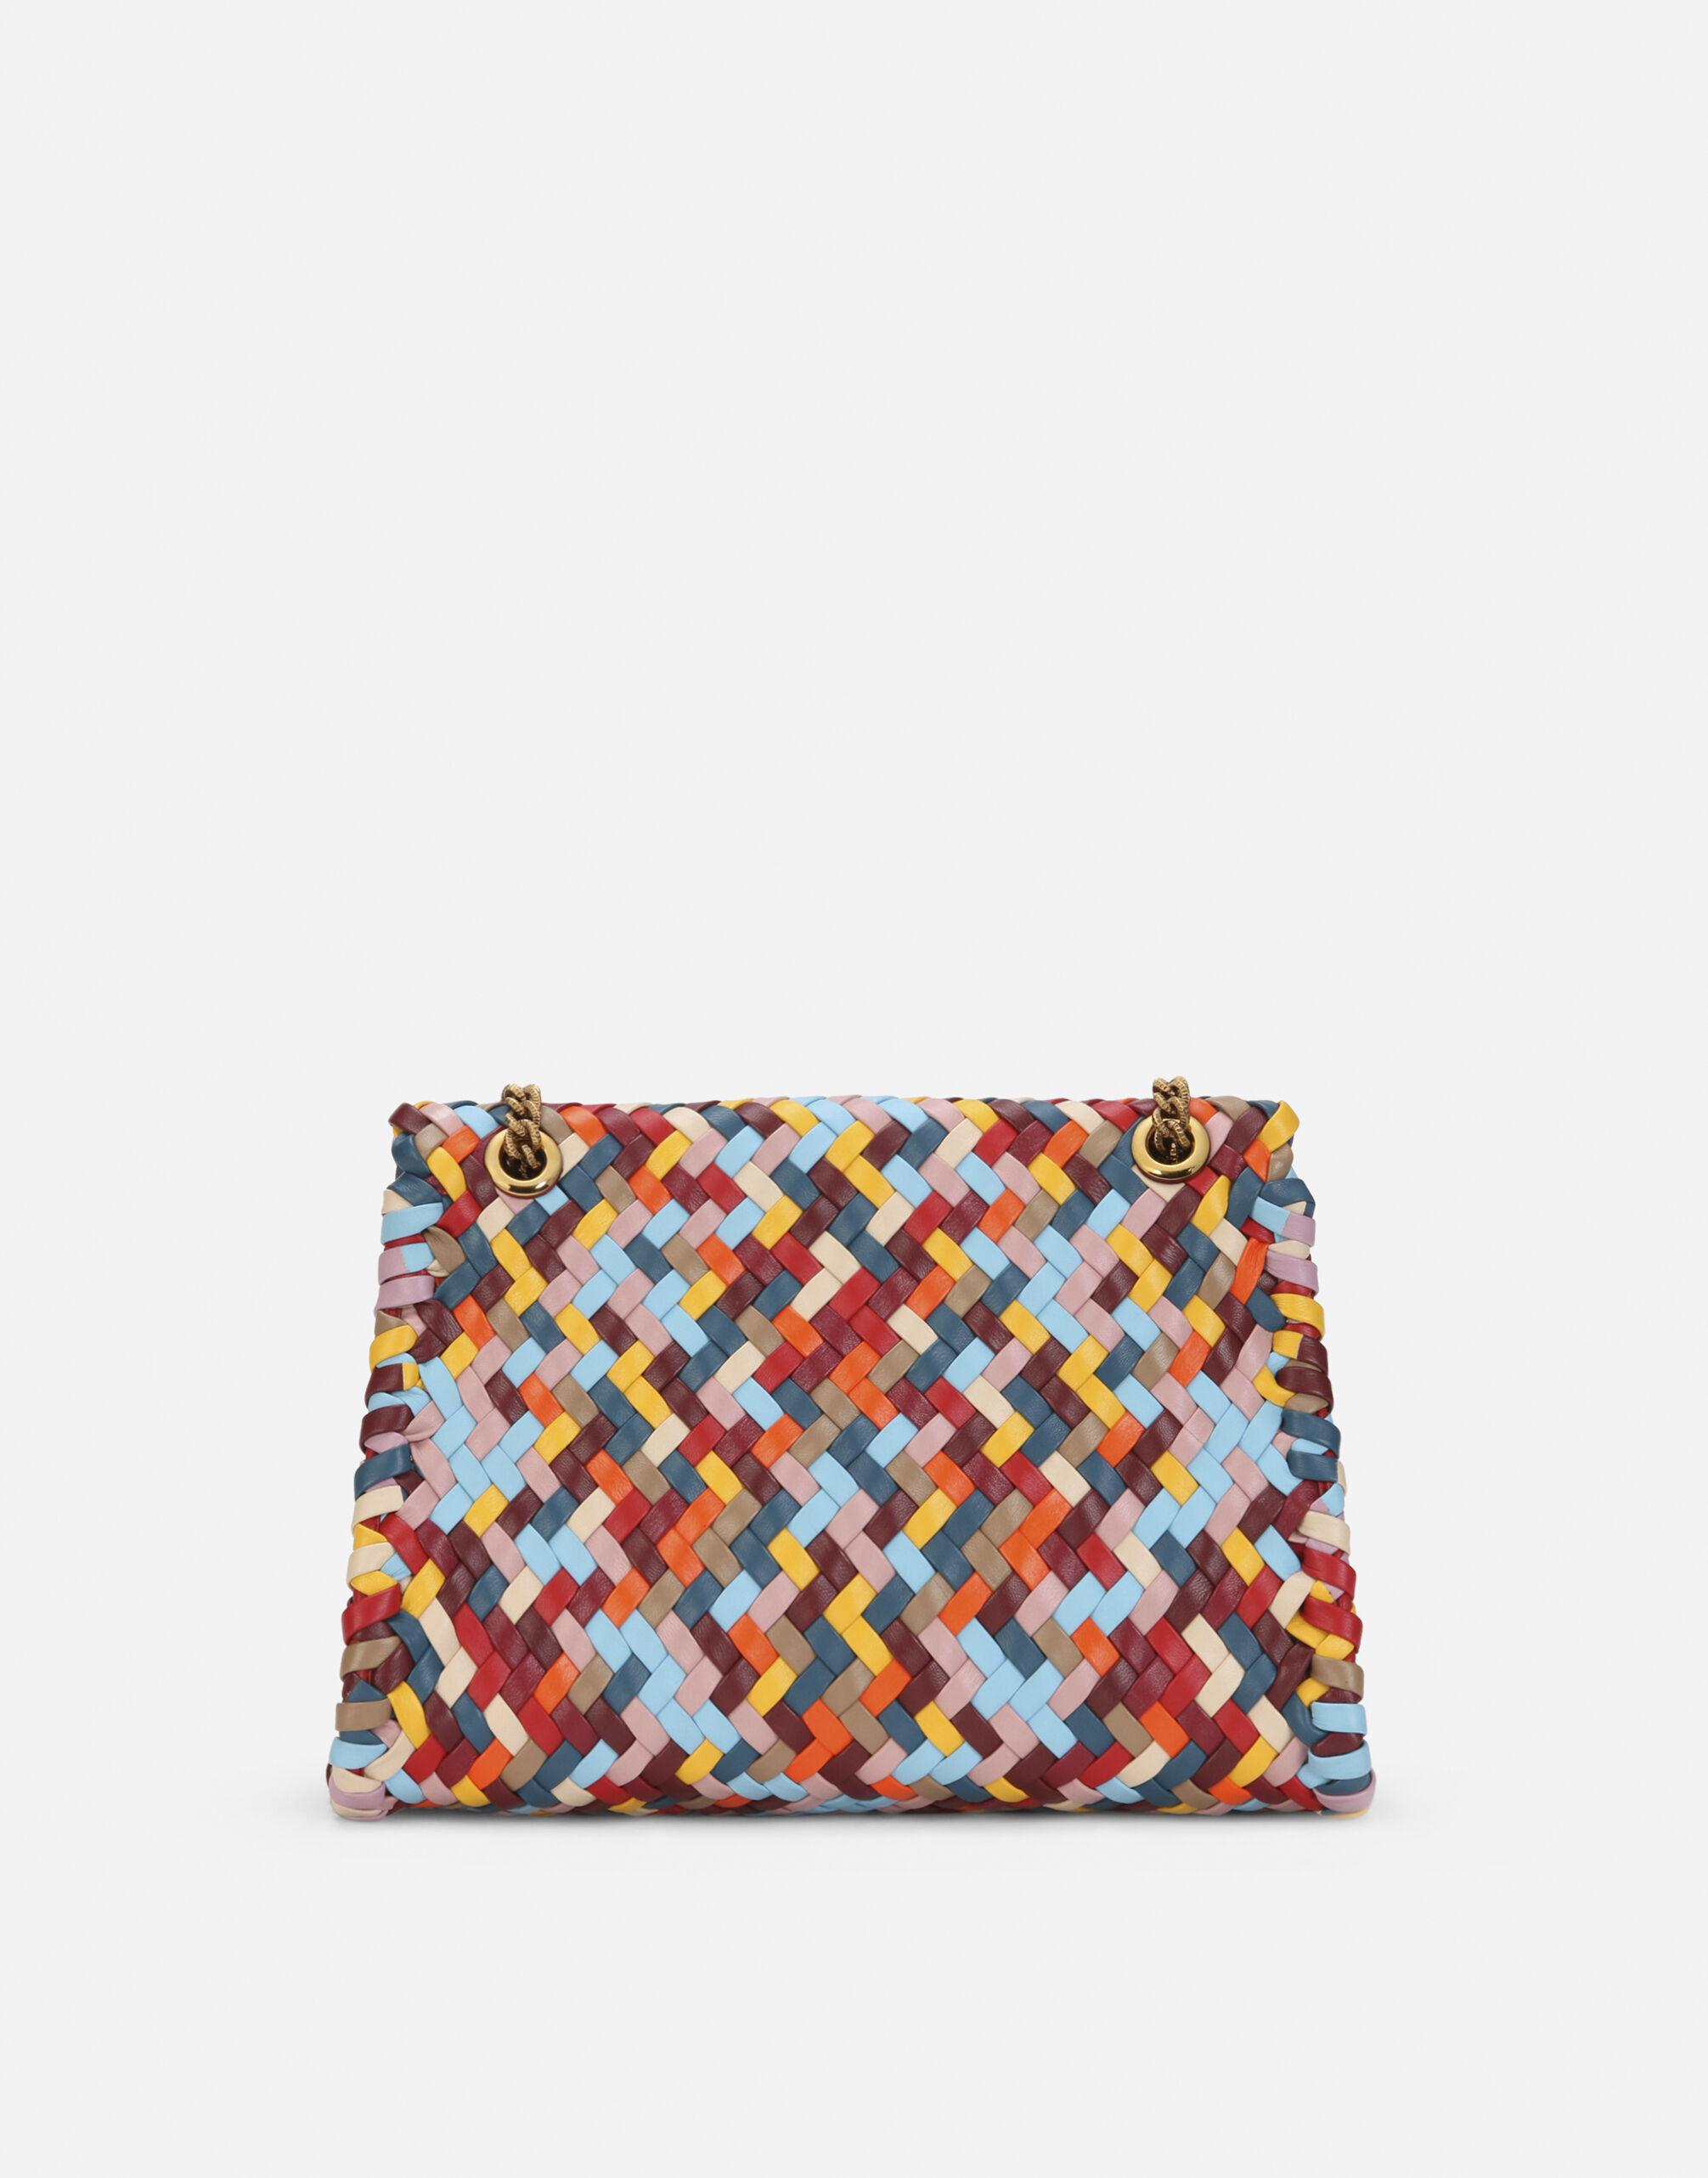 Large Devotion shoulder bag in multi-colored woven nappa leather 2